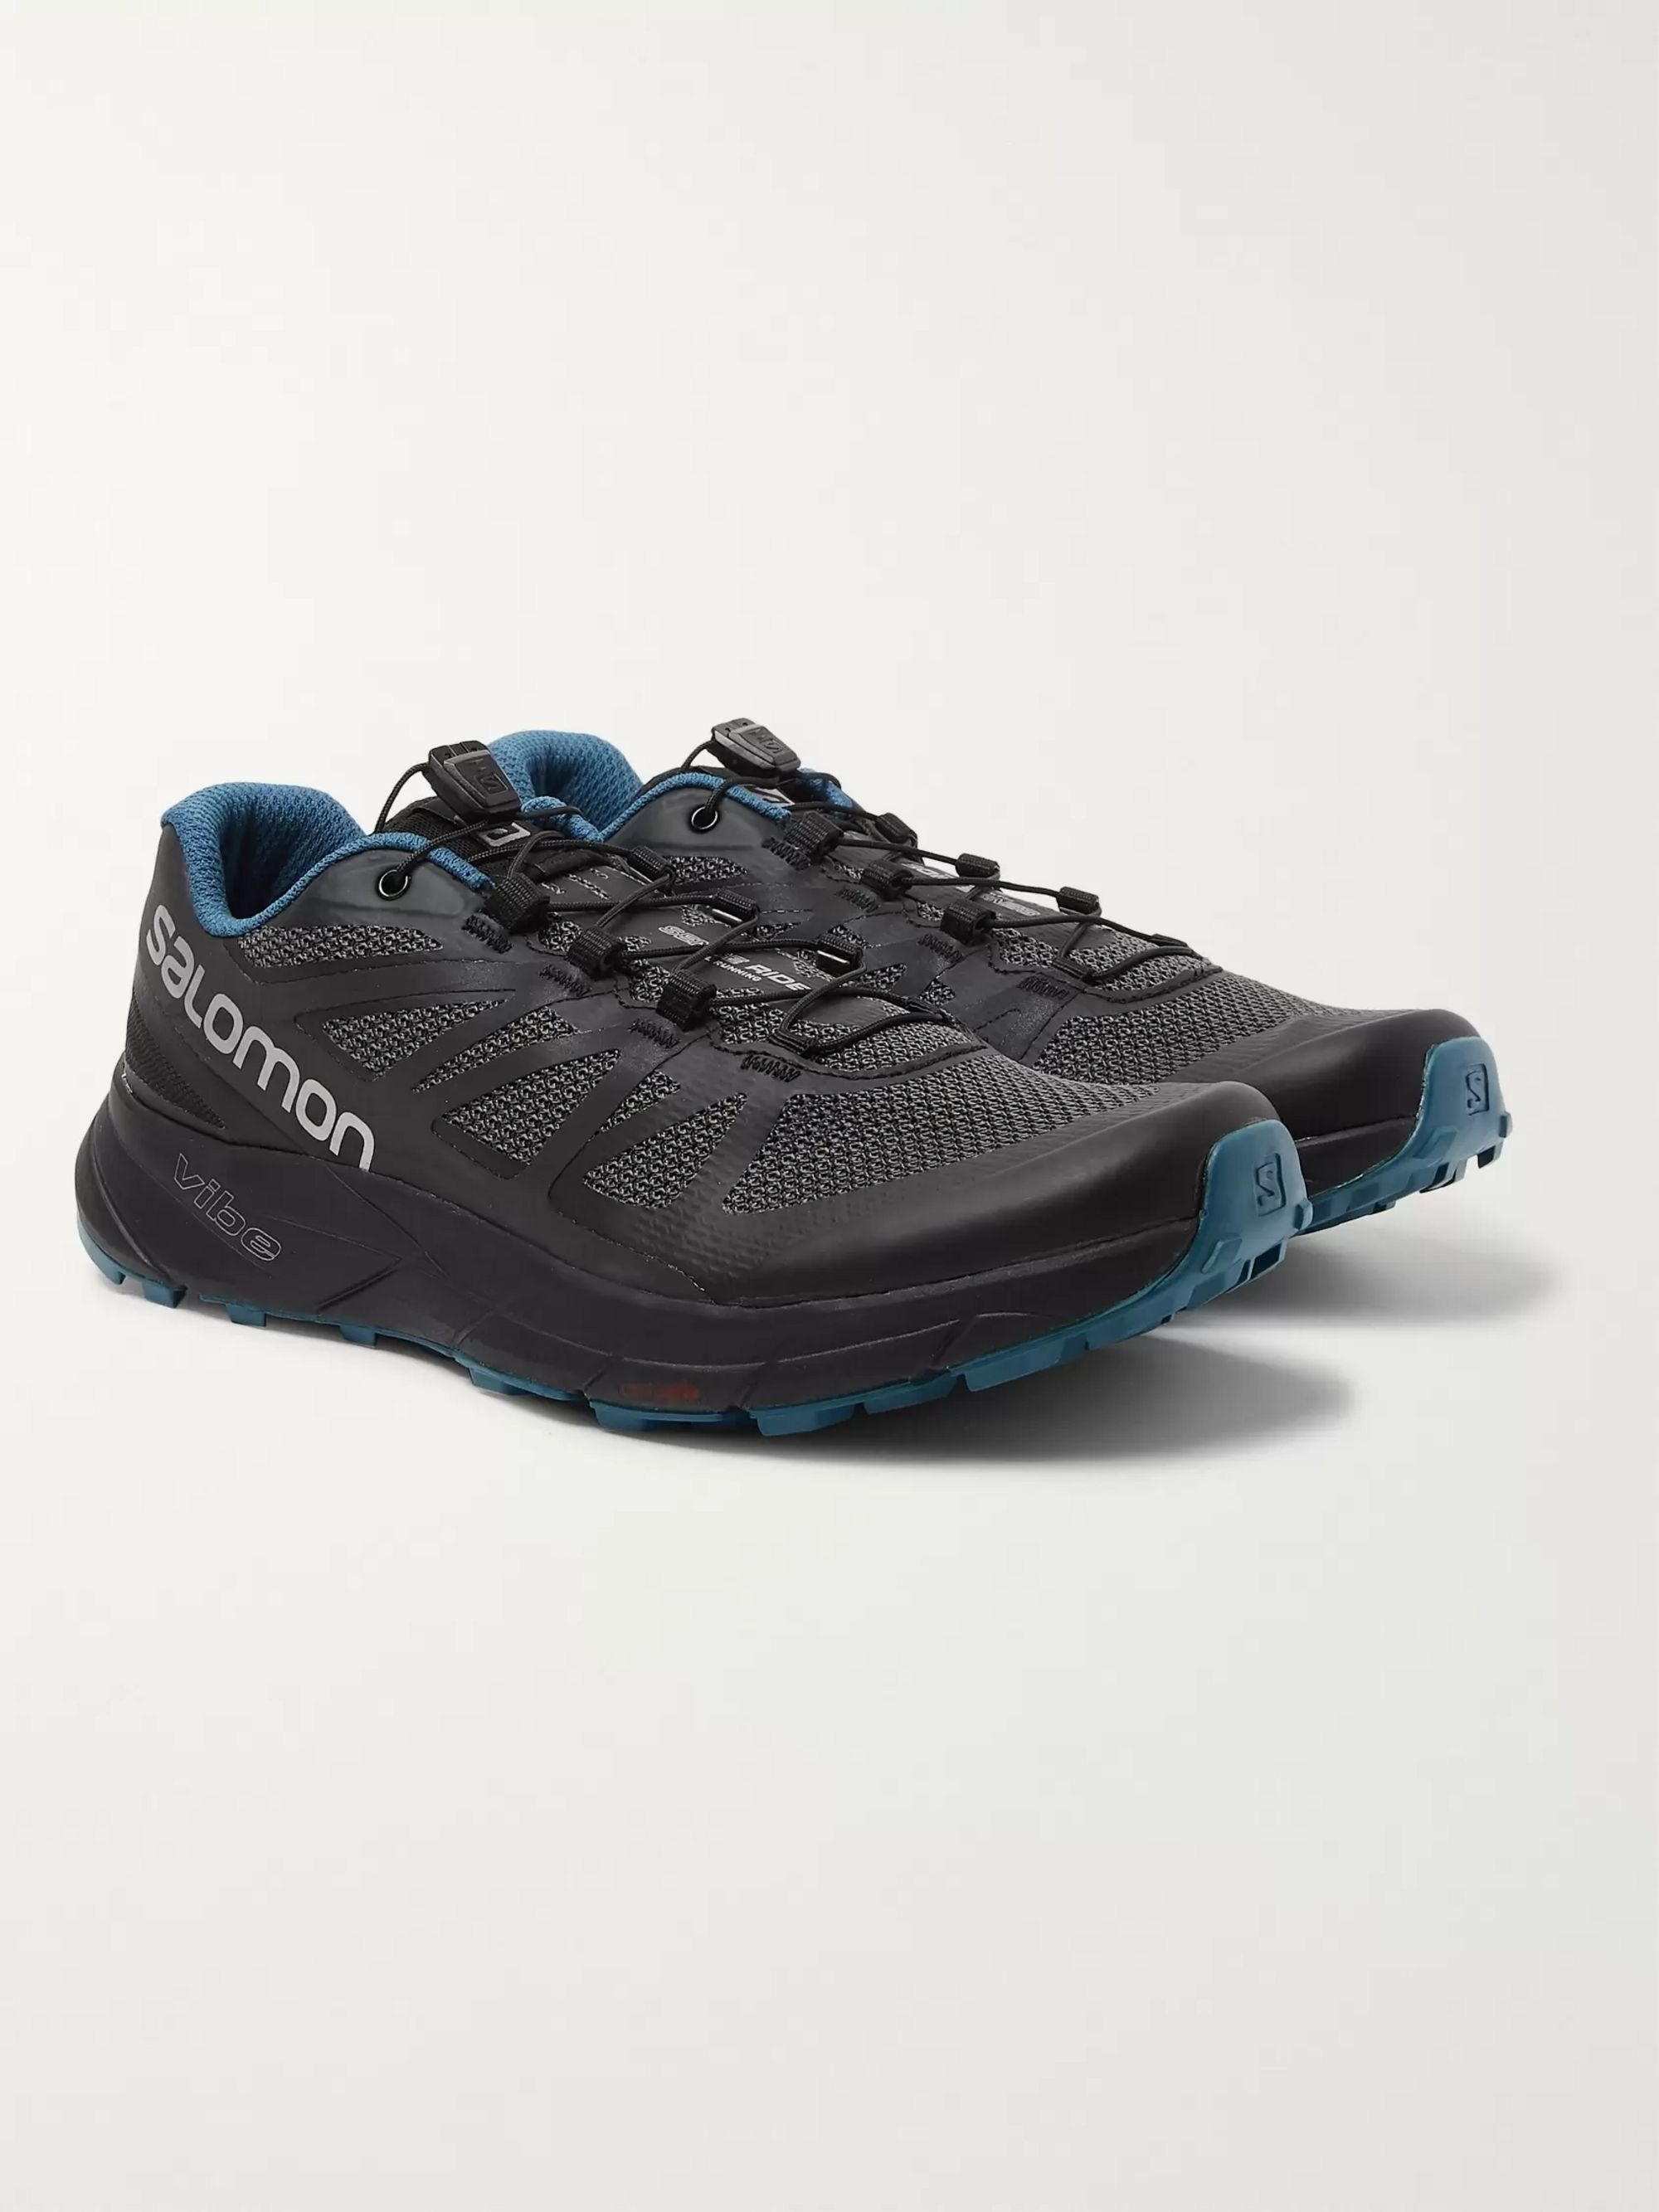 Salomon Sense Ride Nocturne Mesh and Rubber Running Sneakers